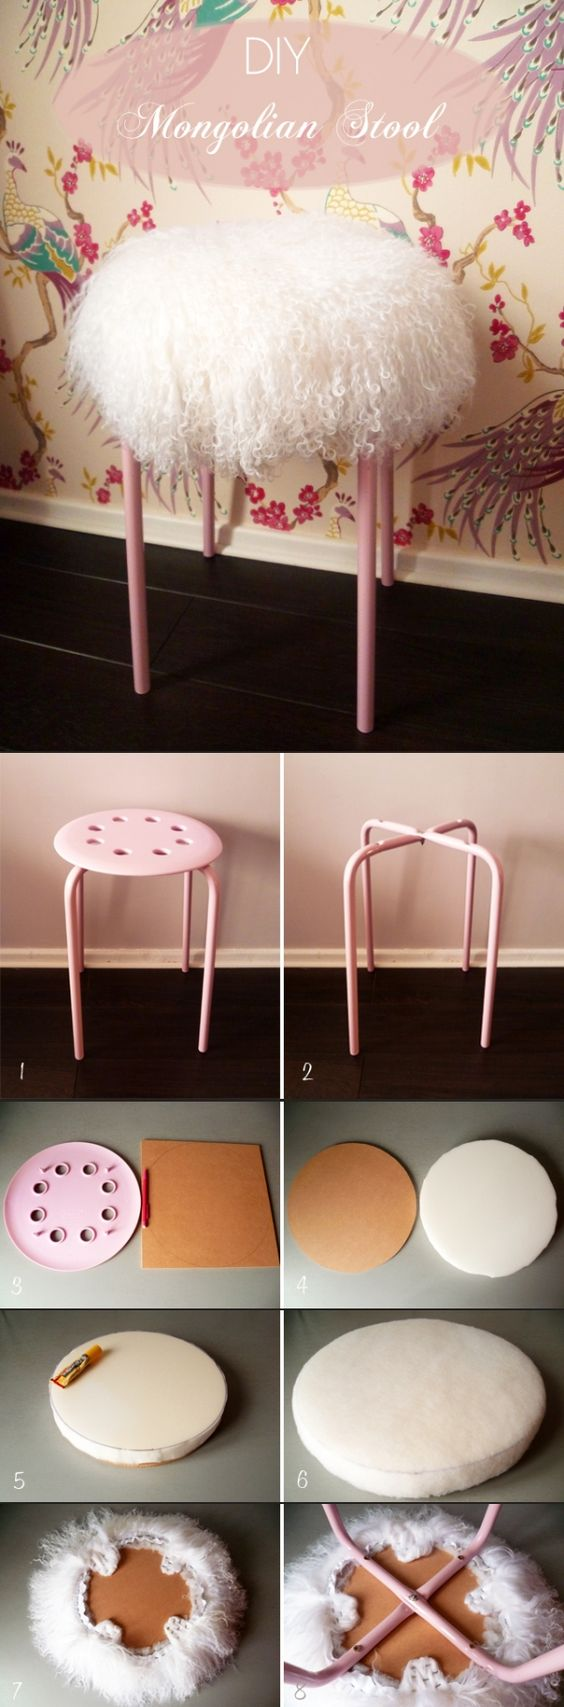 DIY Mongolian Lamb Stool.